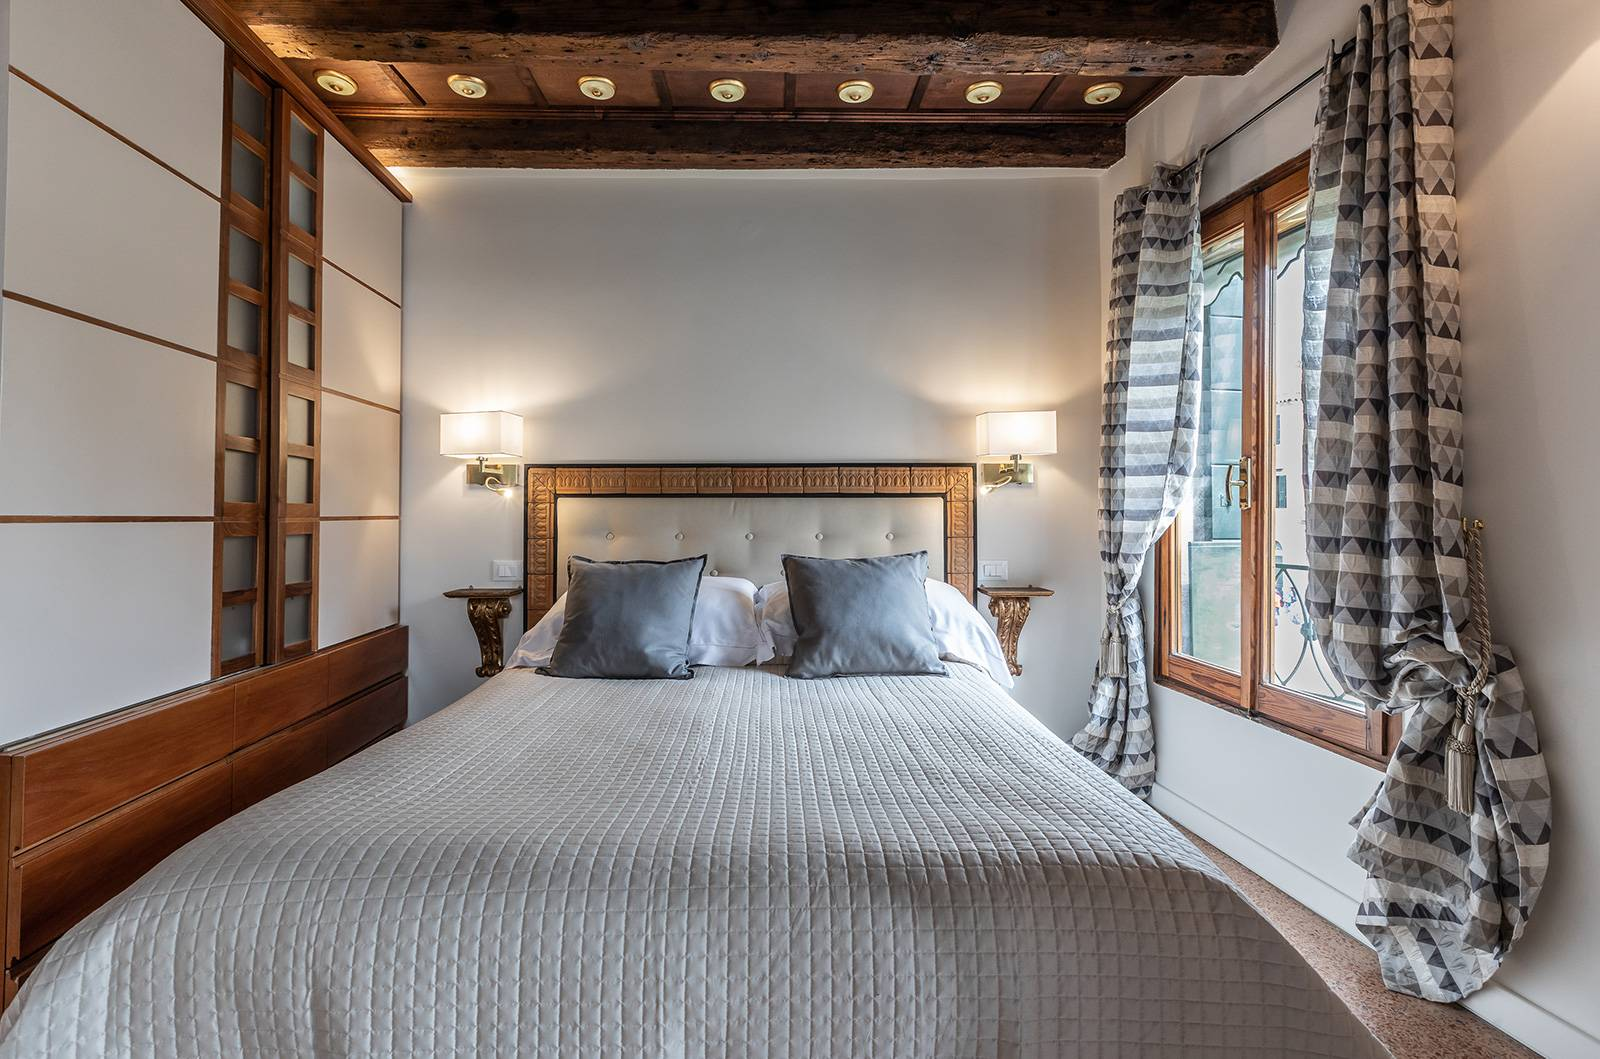 there is a comfortable double bed with pleanty of wardrobe space